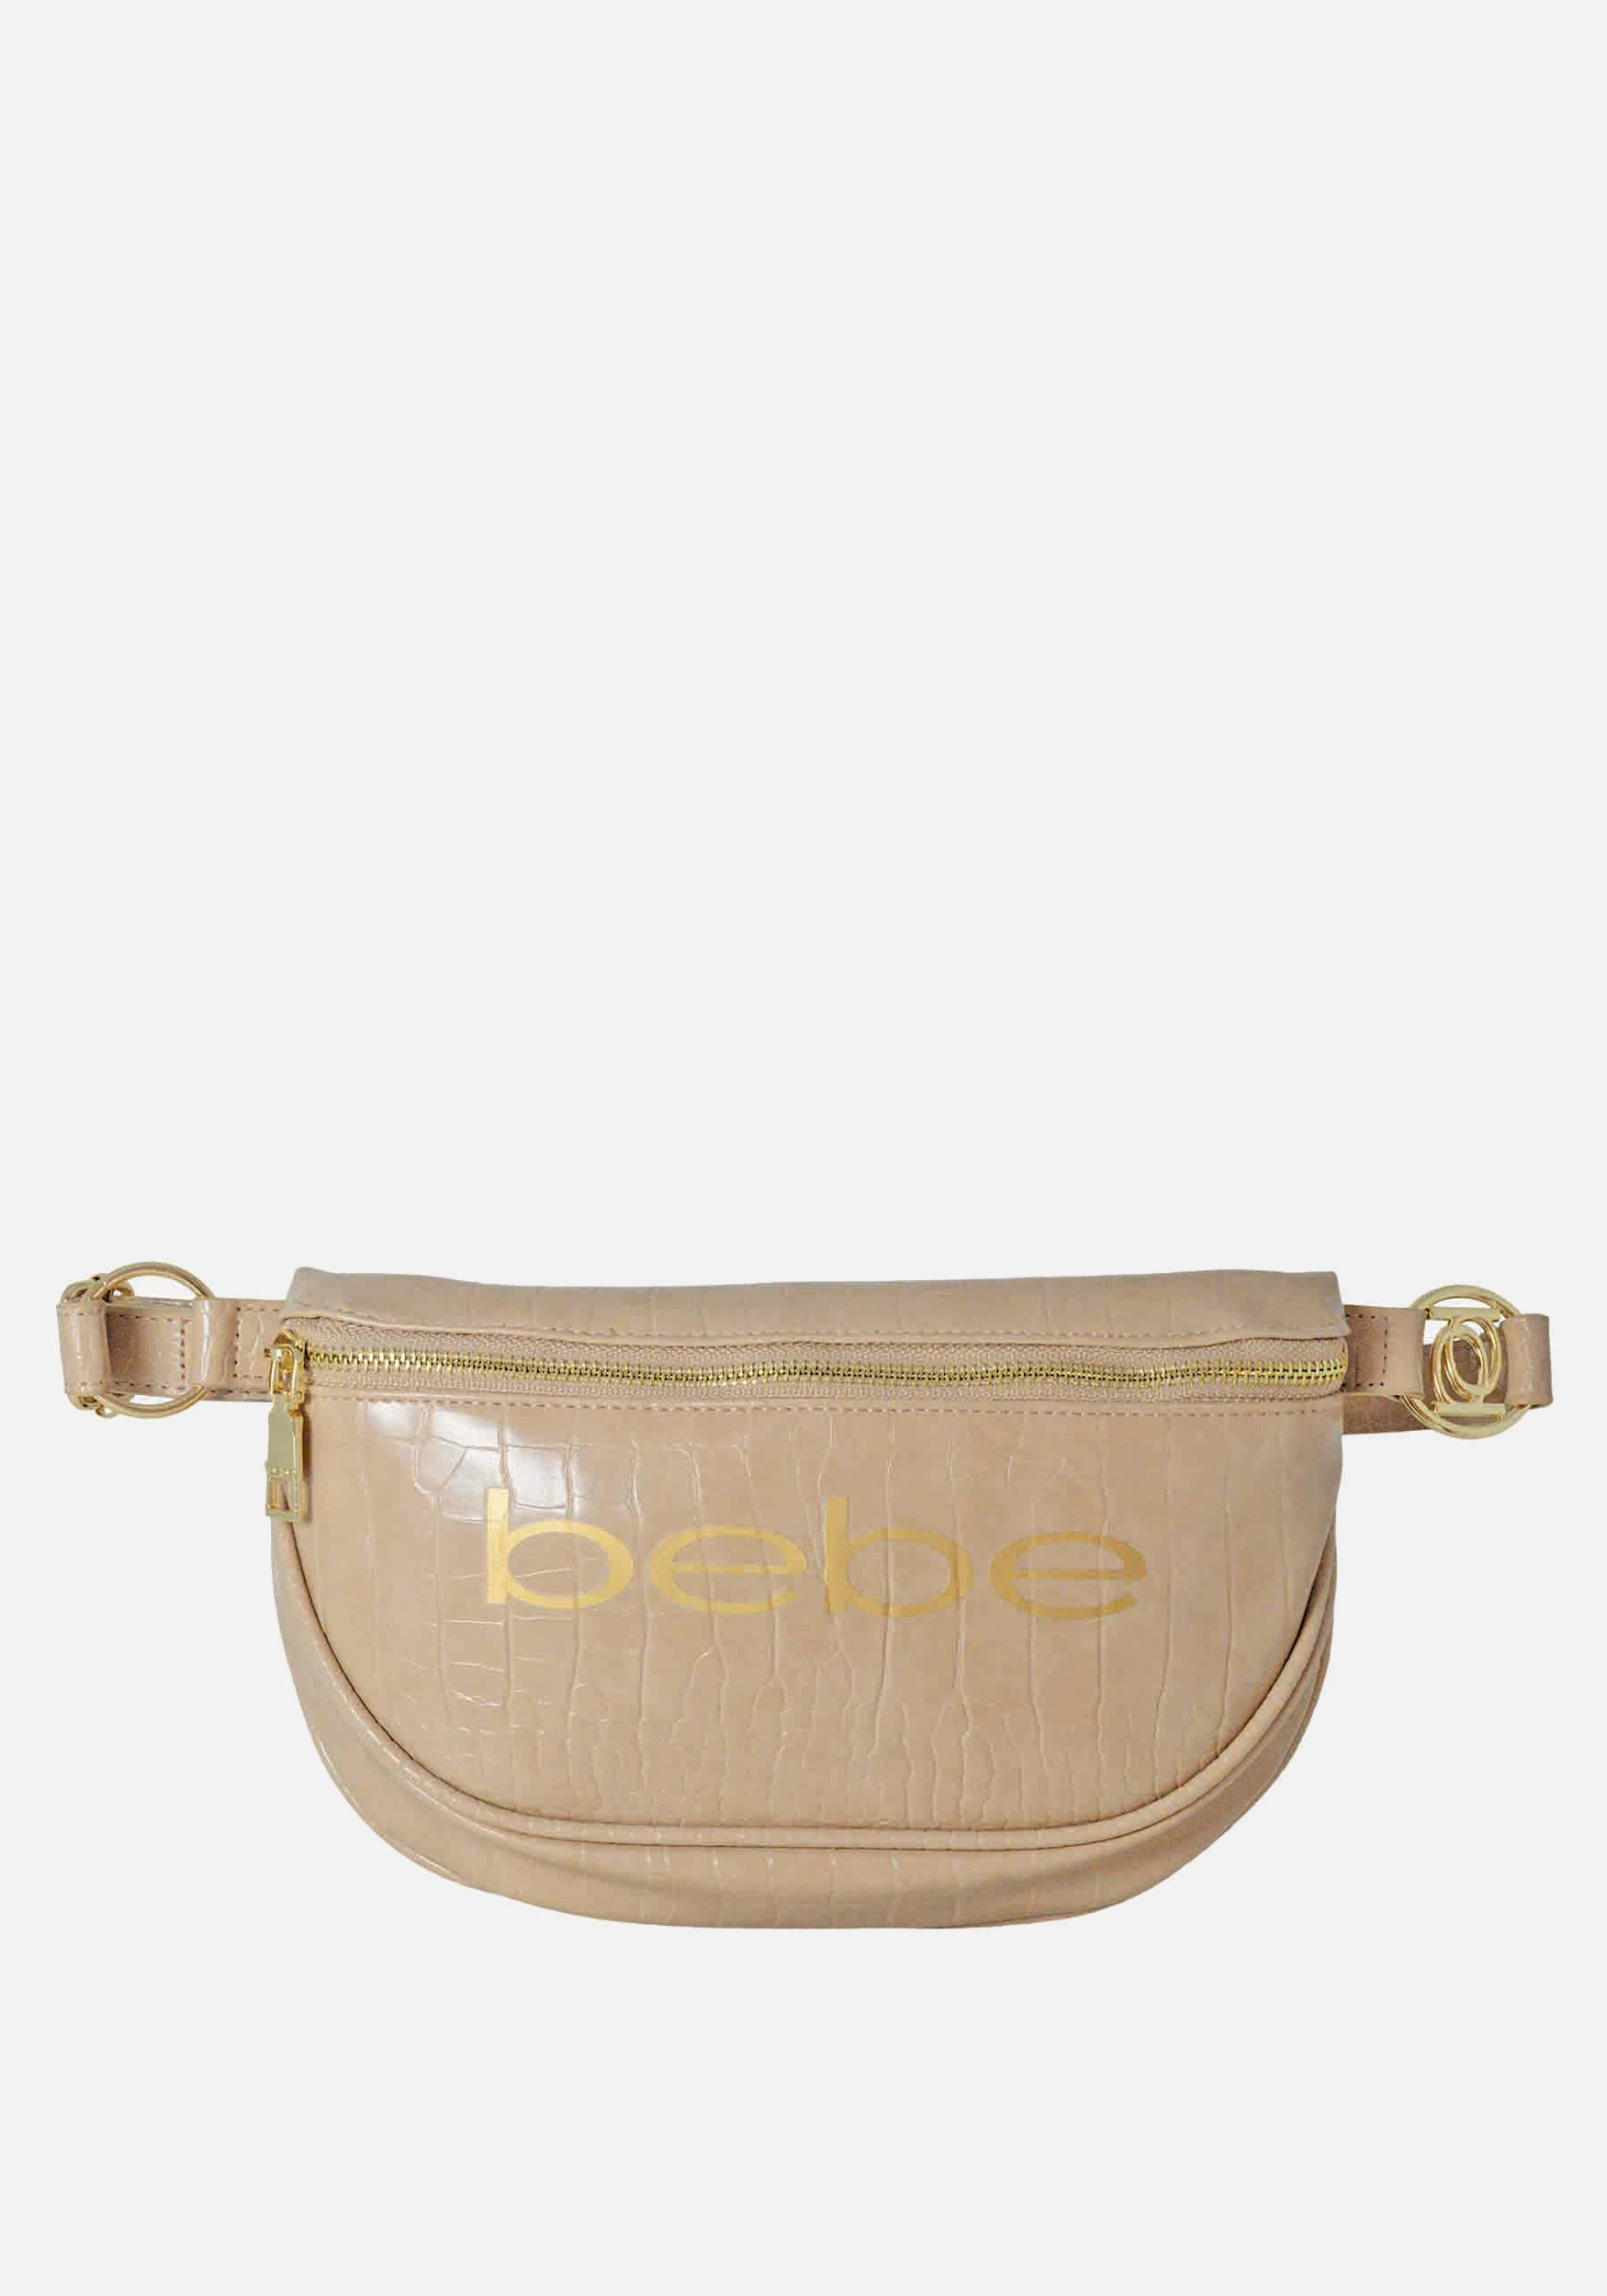 Bebe Women's Josephine Croco Convertible Sling in Taupe Polyester